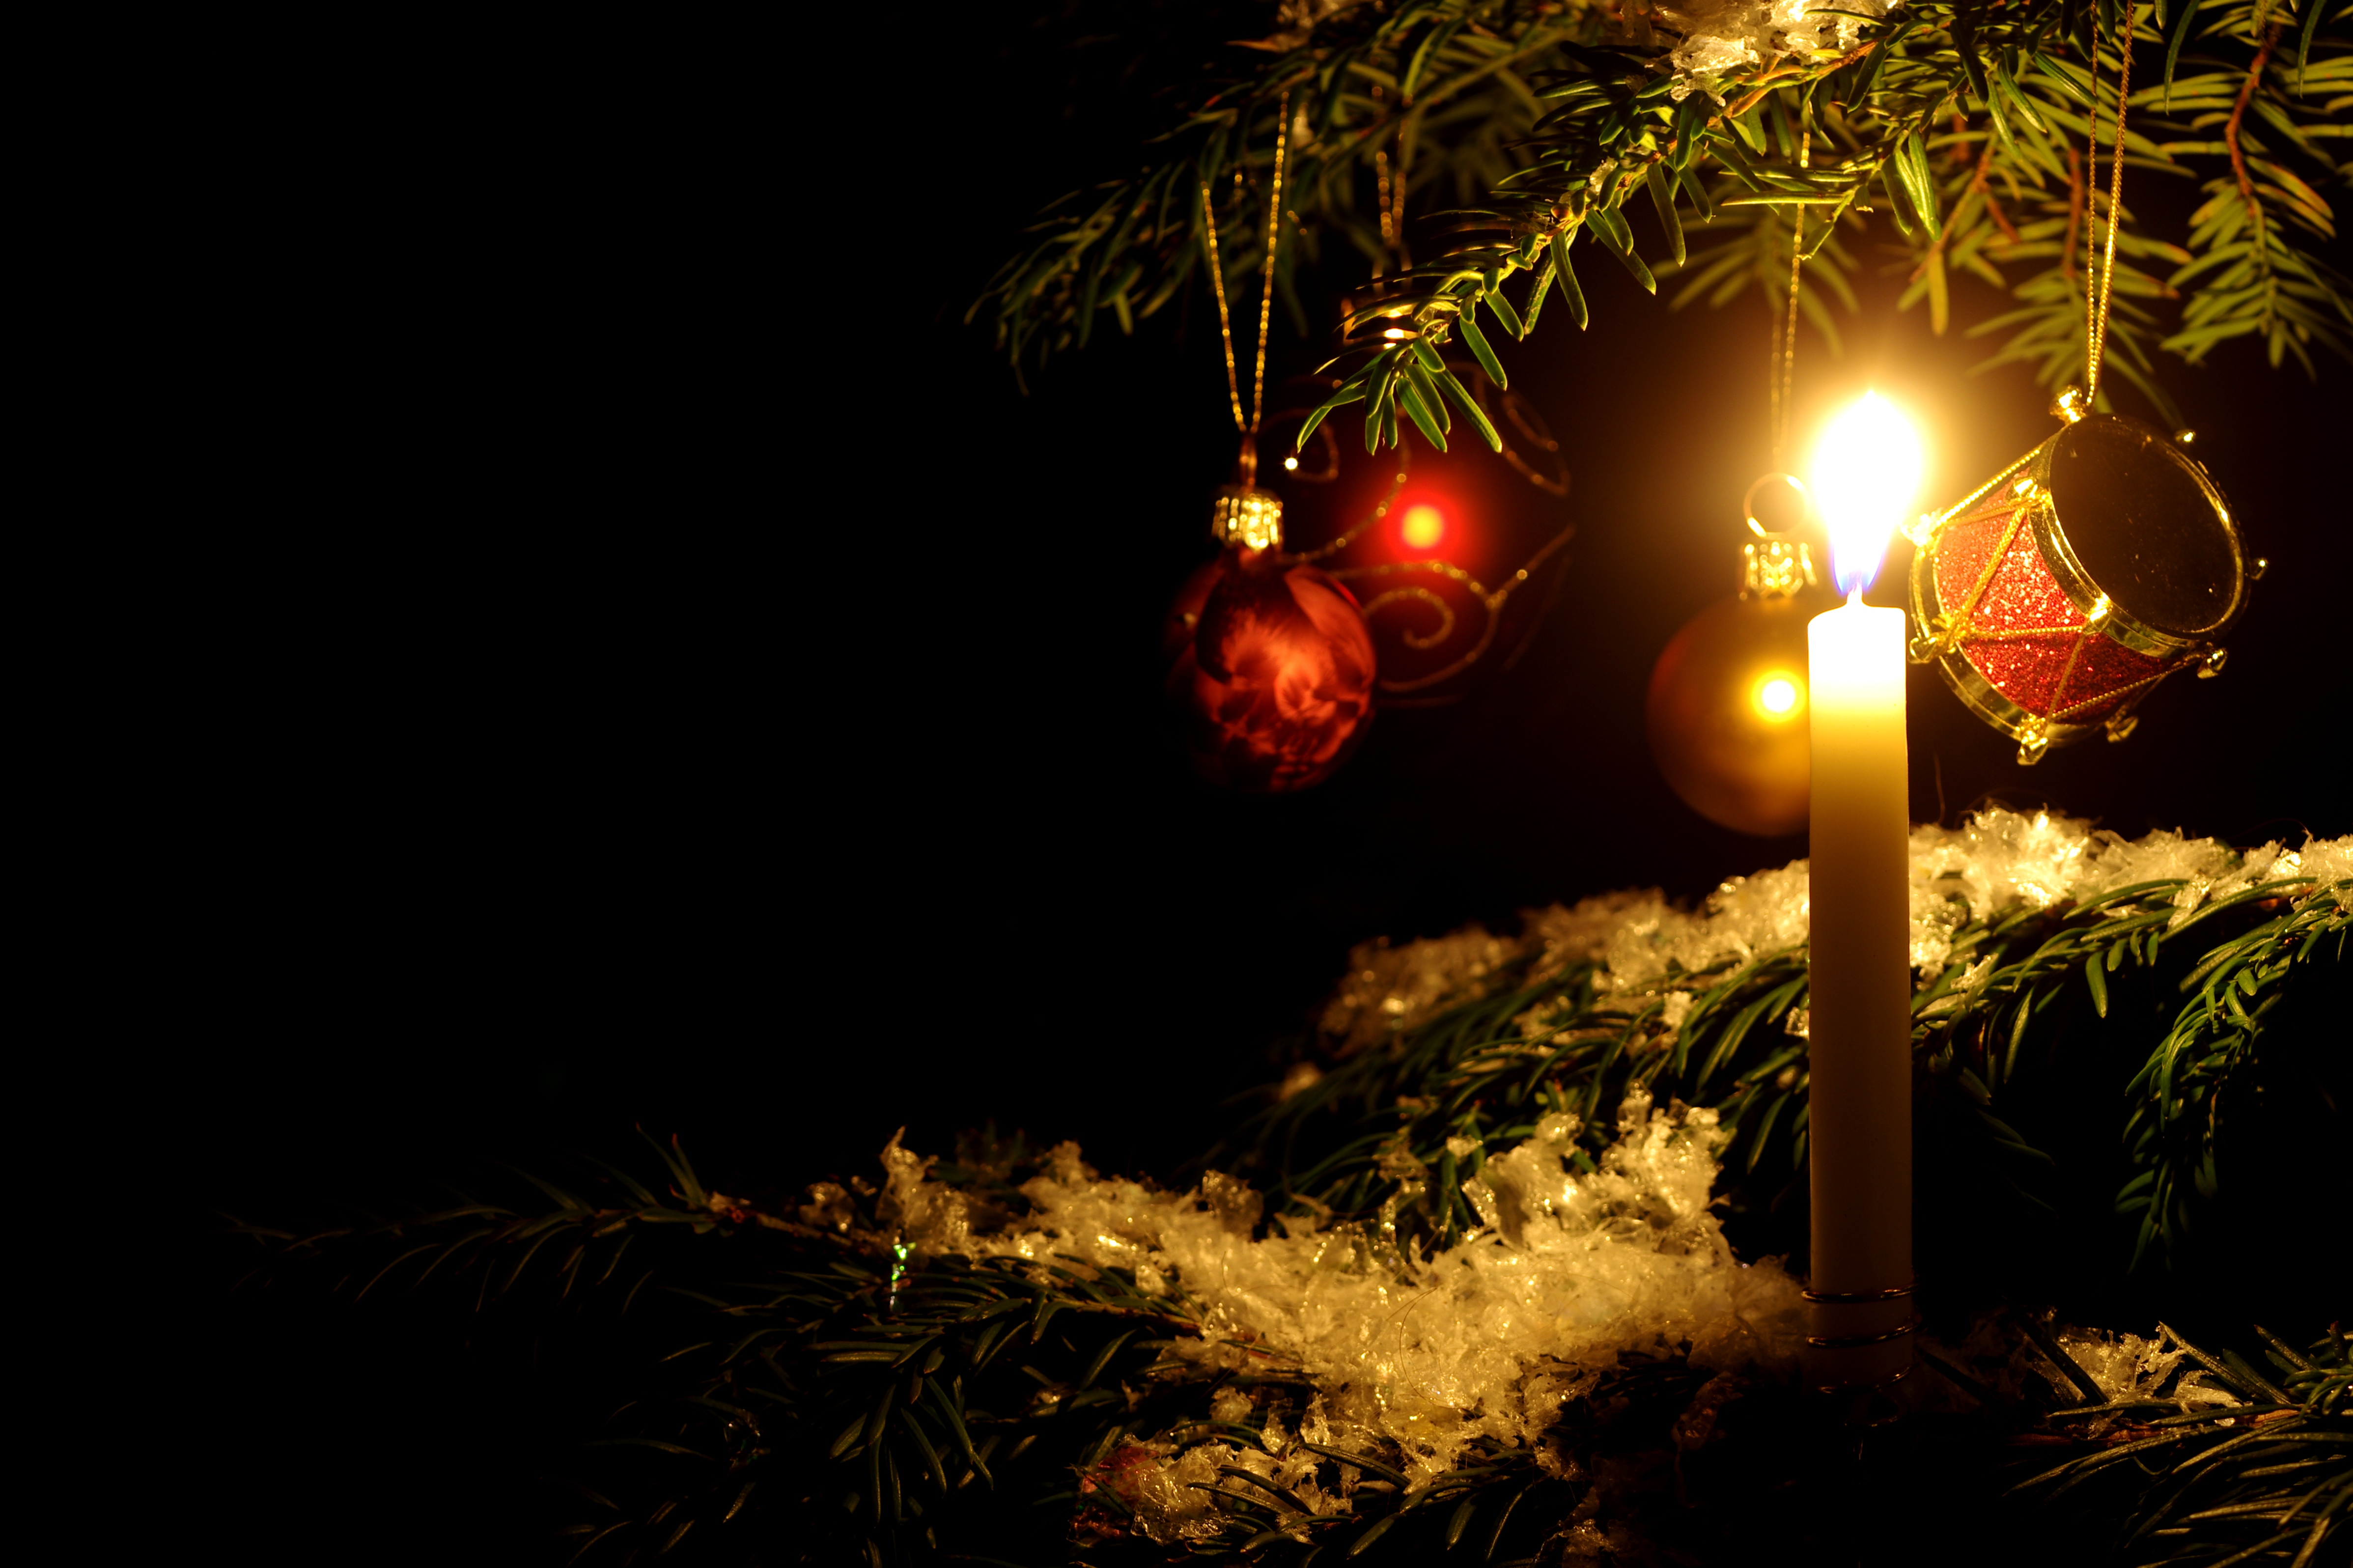 christmas ornament lit by candle